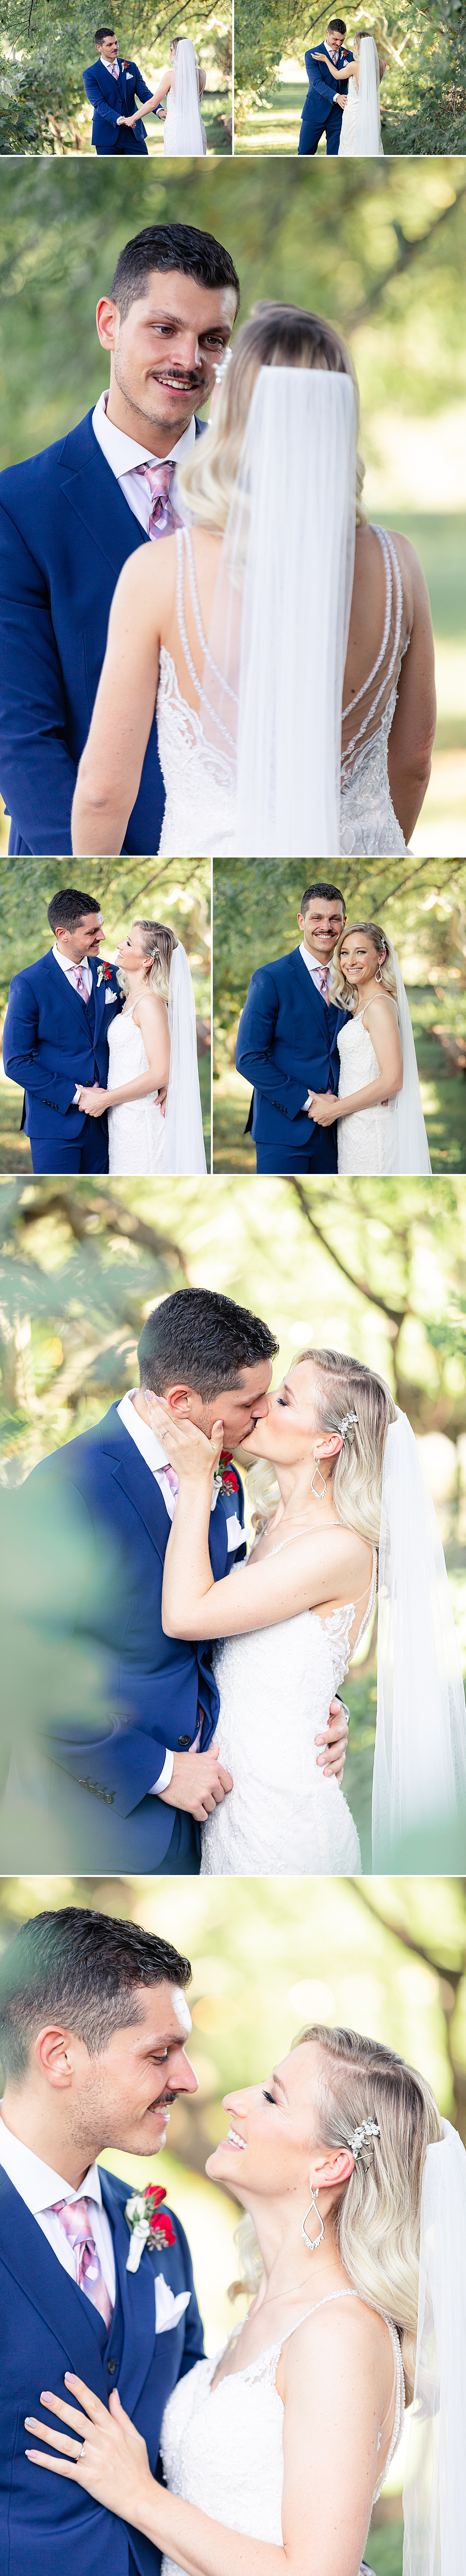 Navy-Burgundy-Blush-Texas-Wedding-Oak-Valley-Vineyards-New-Braunfels-Carly-Barton-Photography_0024.jpg